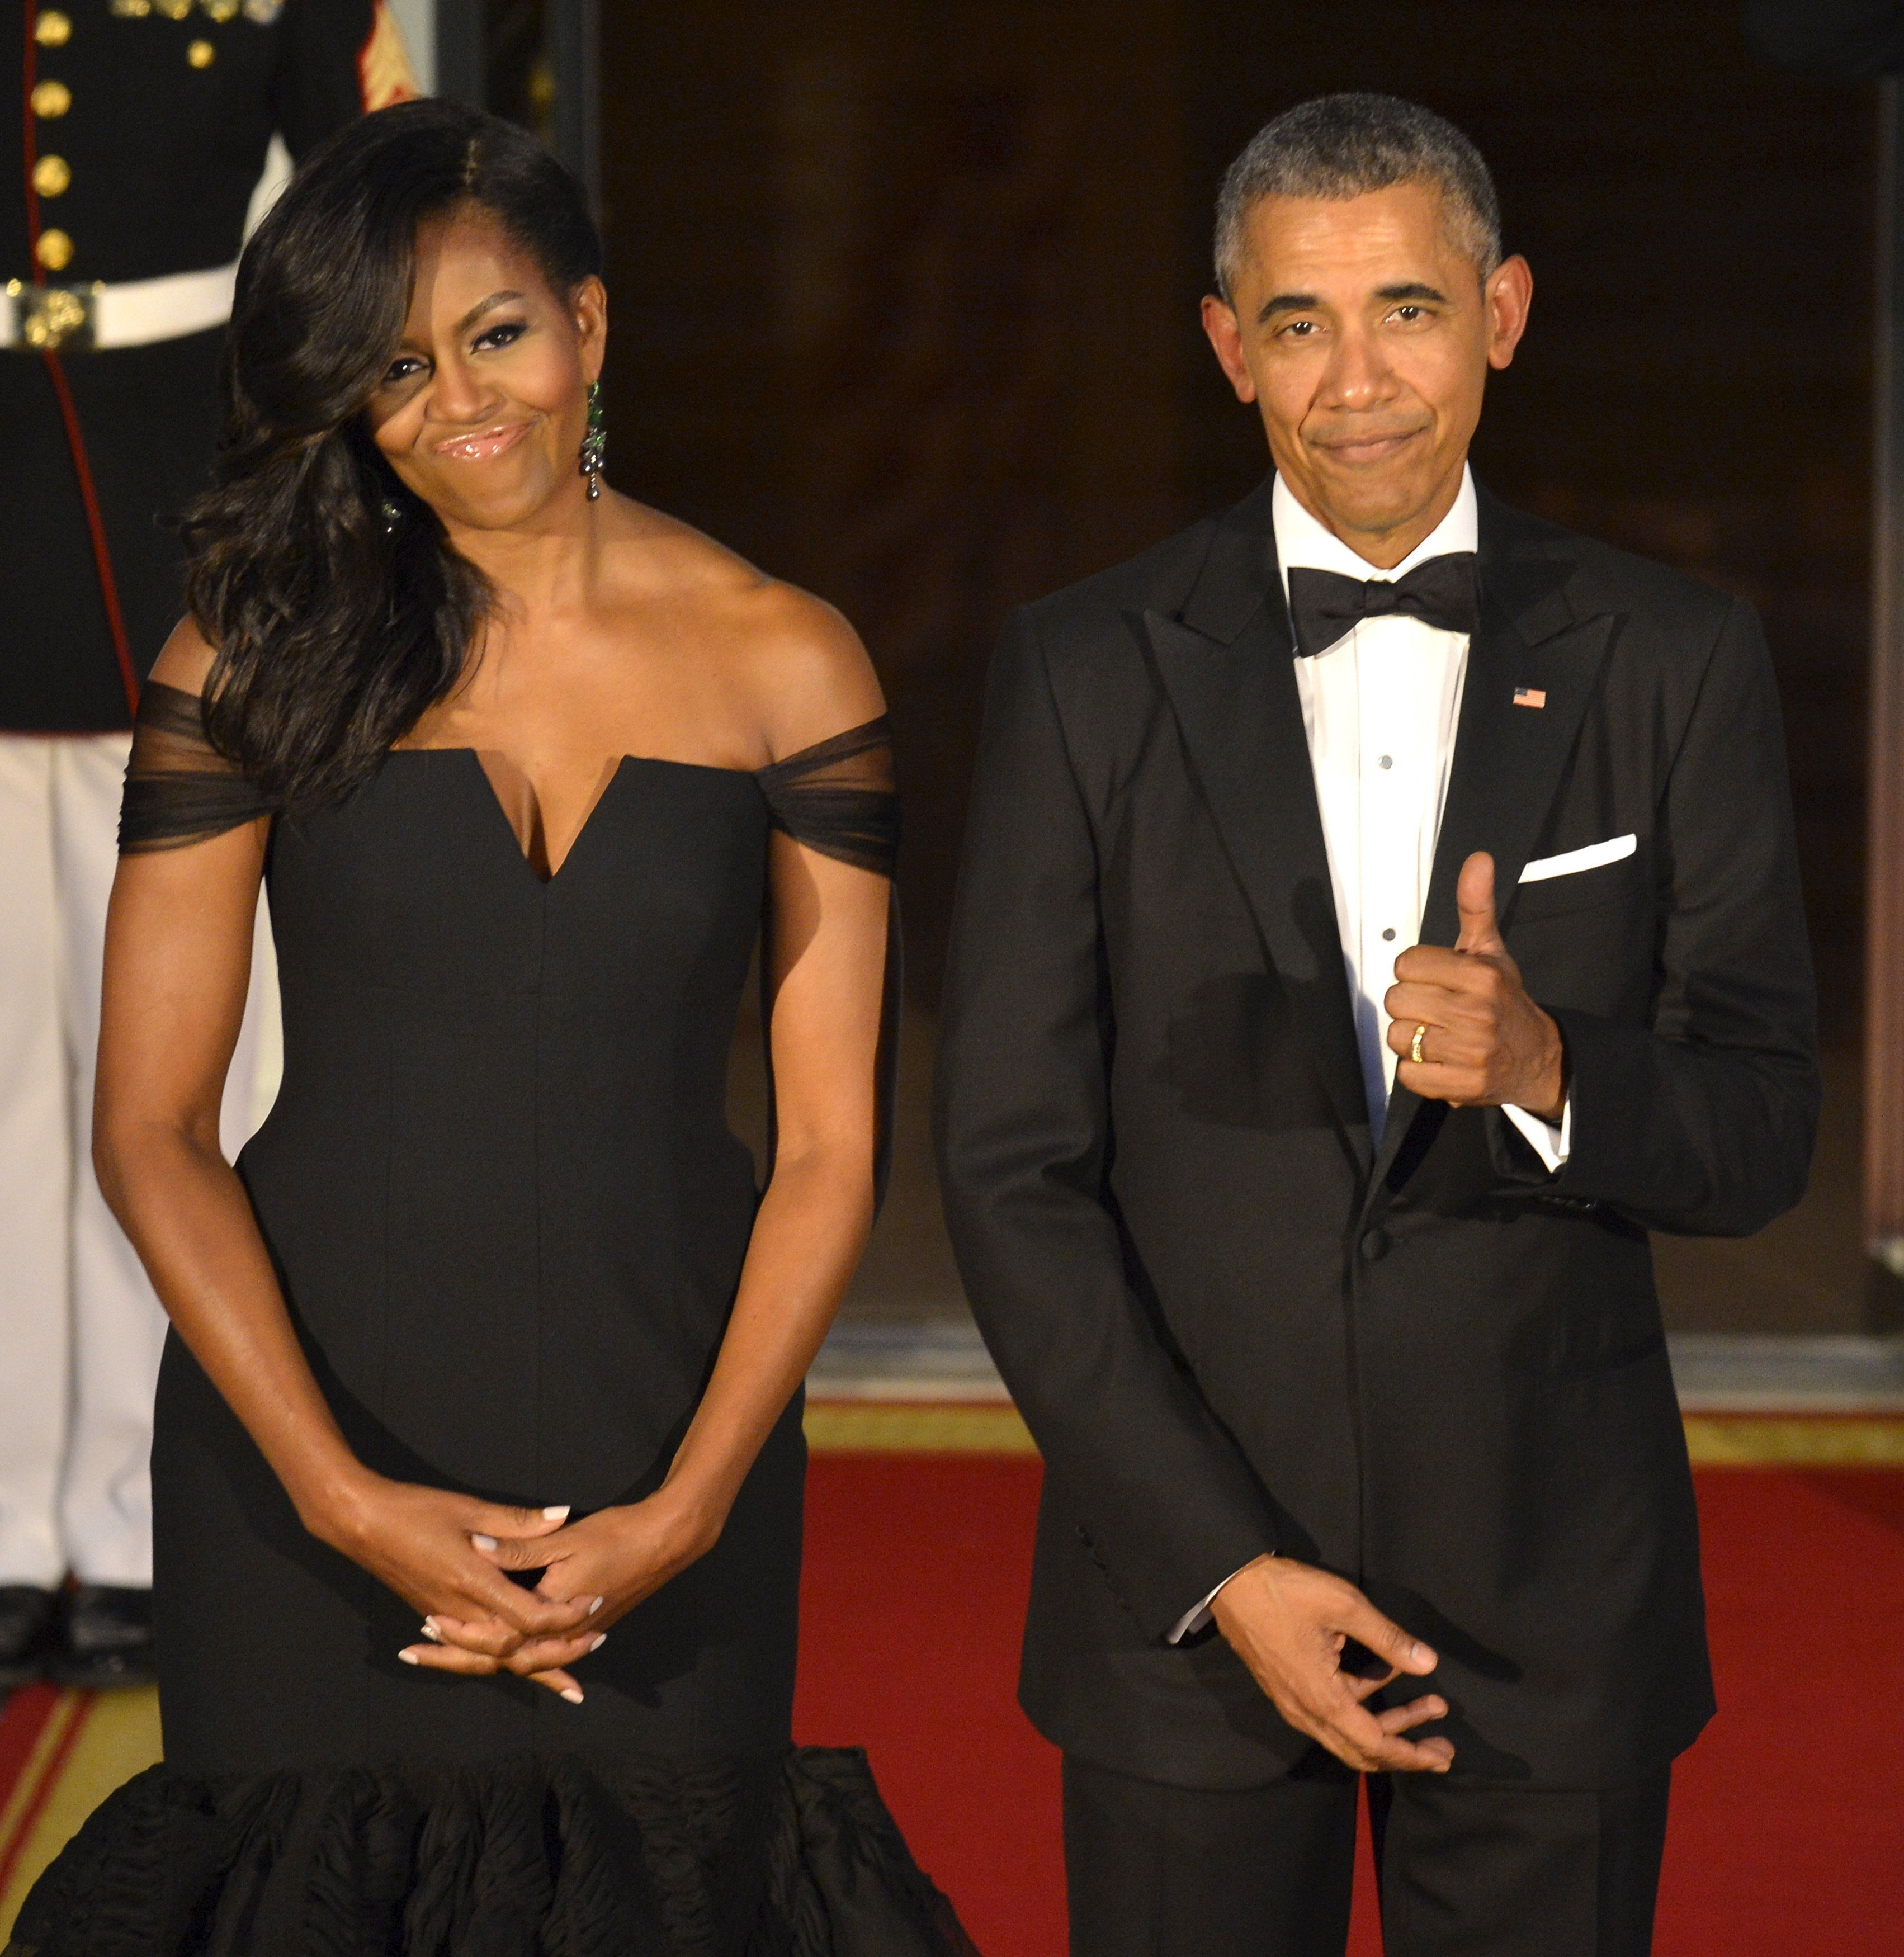 The President has no complaints about FLOTUS's style.